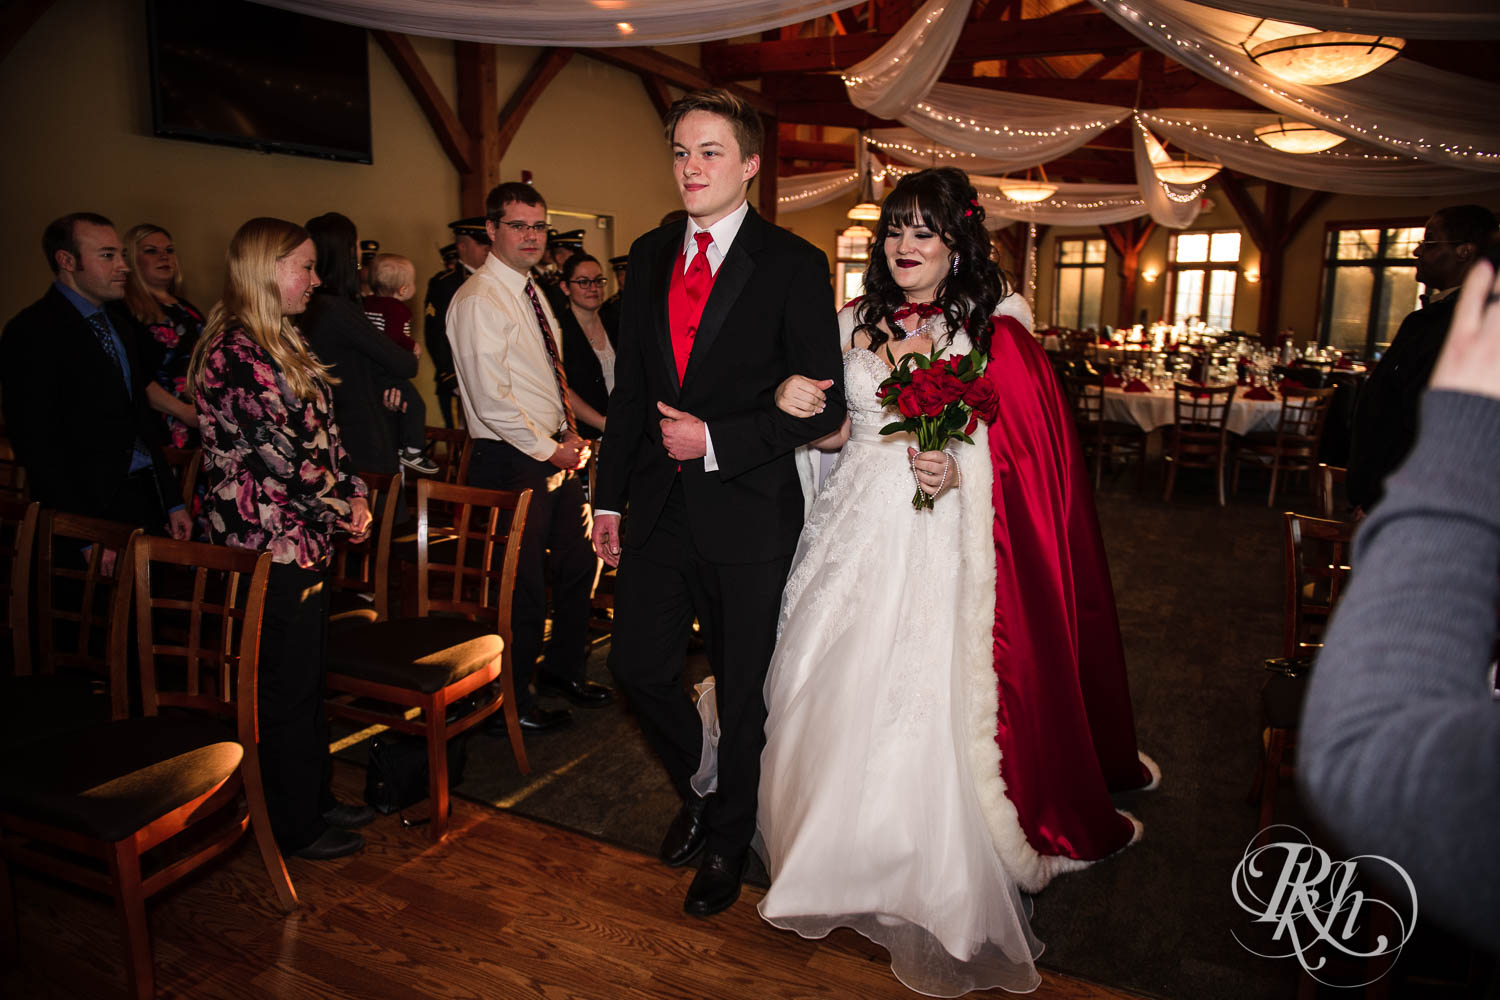 Bre & Charles - Minnesota Wedding Photograpy - Refuge Golf Club - RKH Images   (18 of 24).jpg